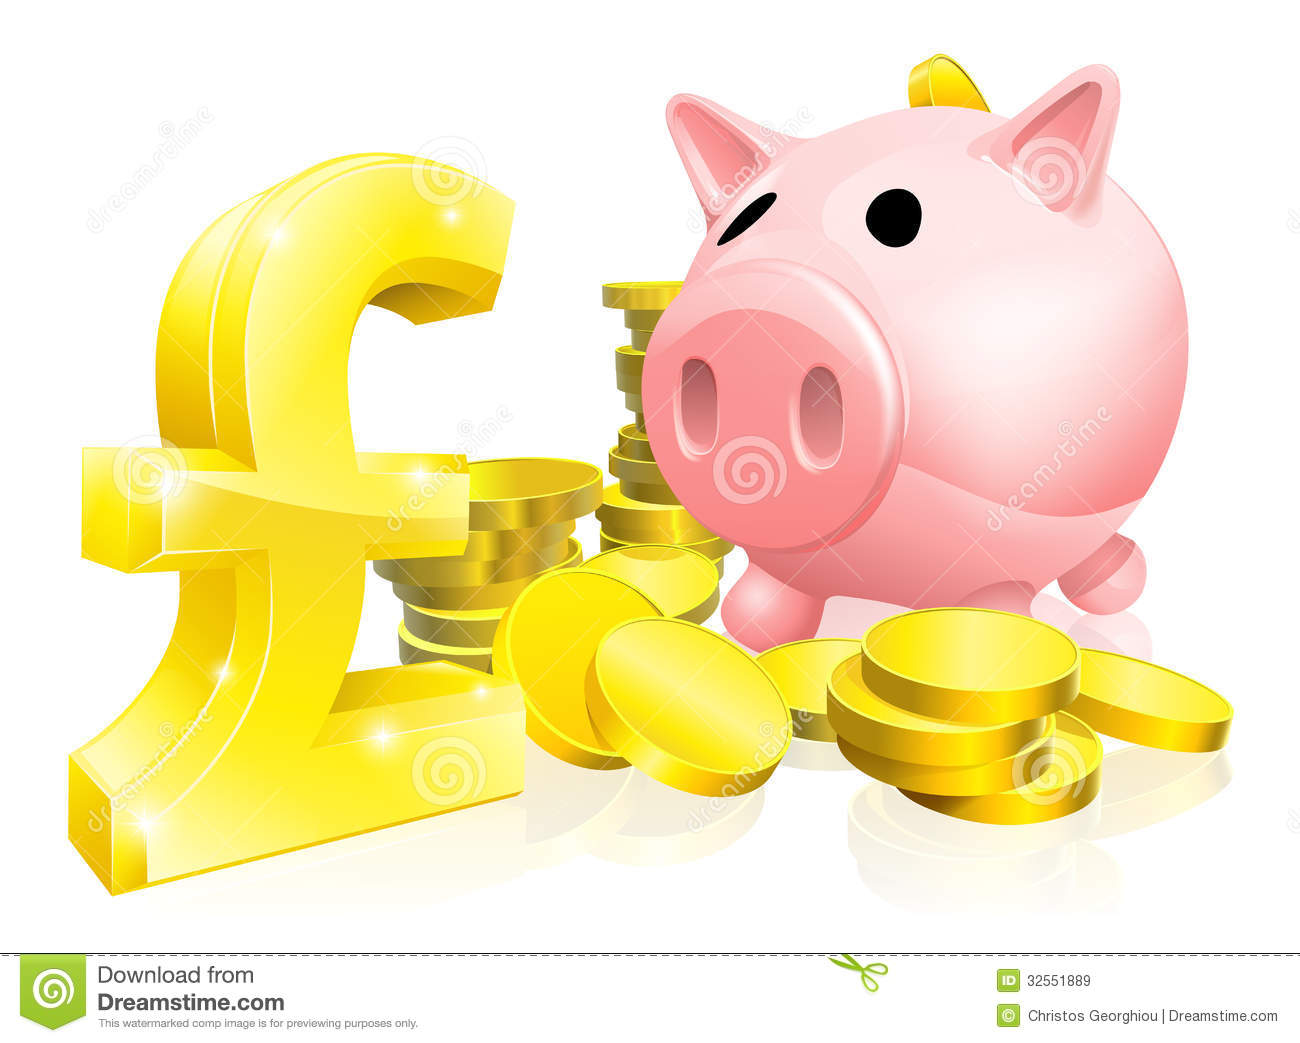 pound sign piggy bank royalty free stock images image penny clip art 1971 penny clip art 1971